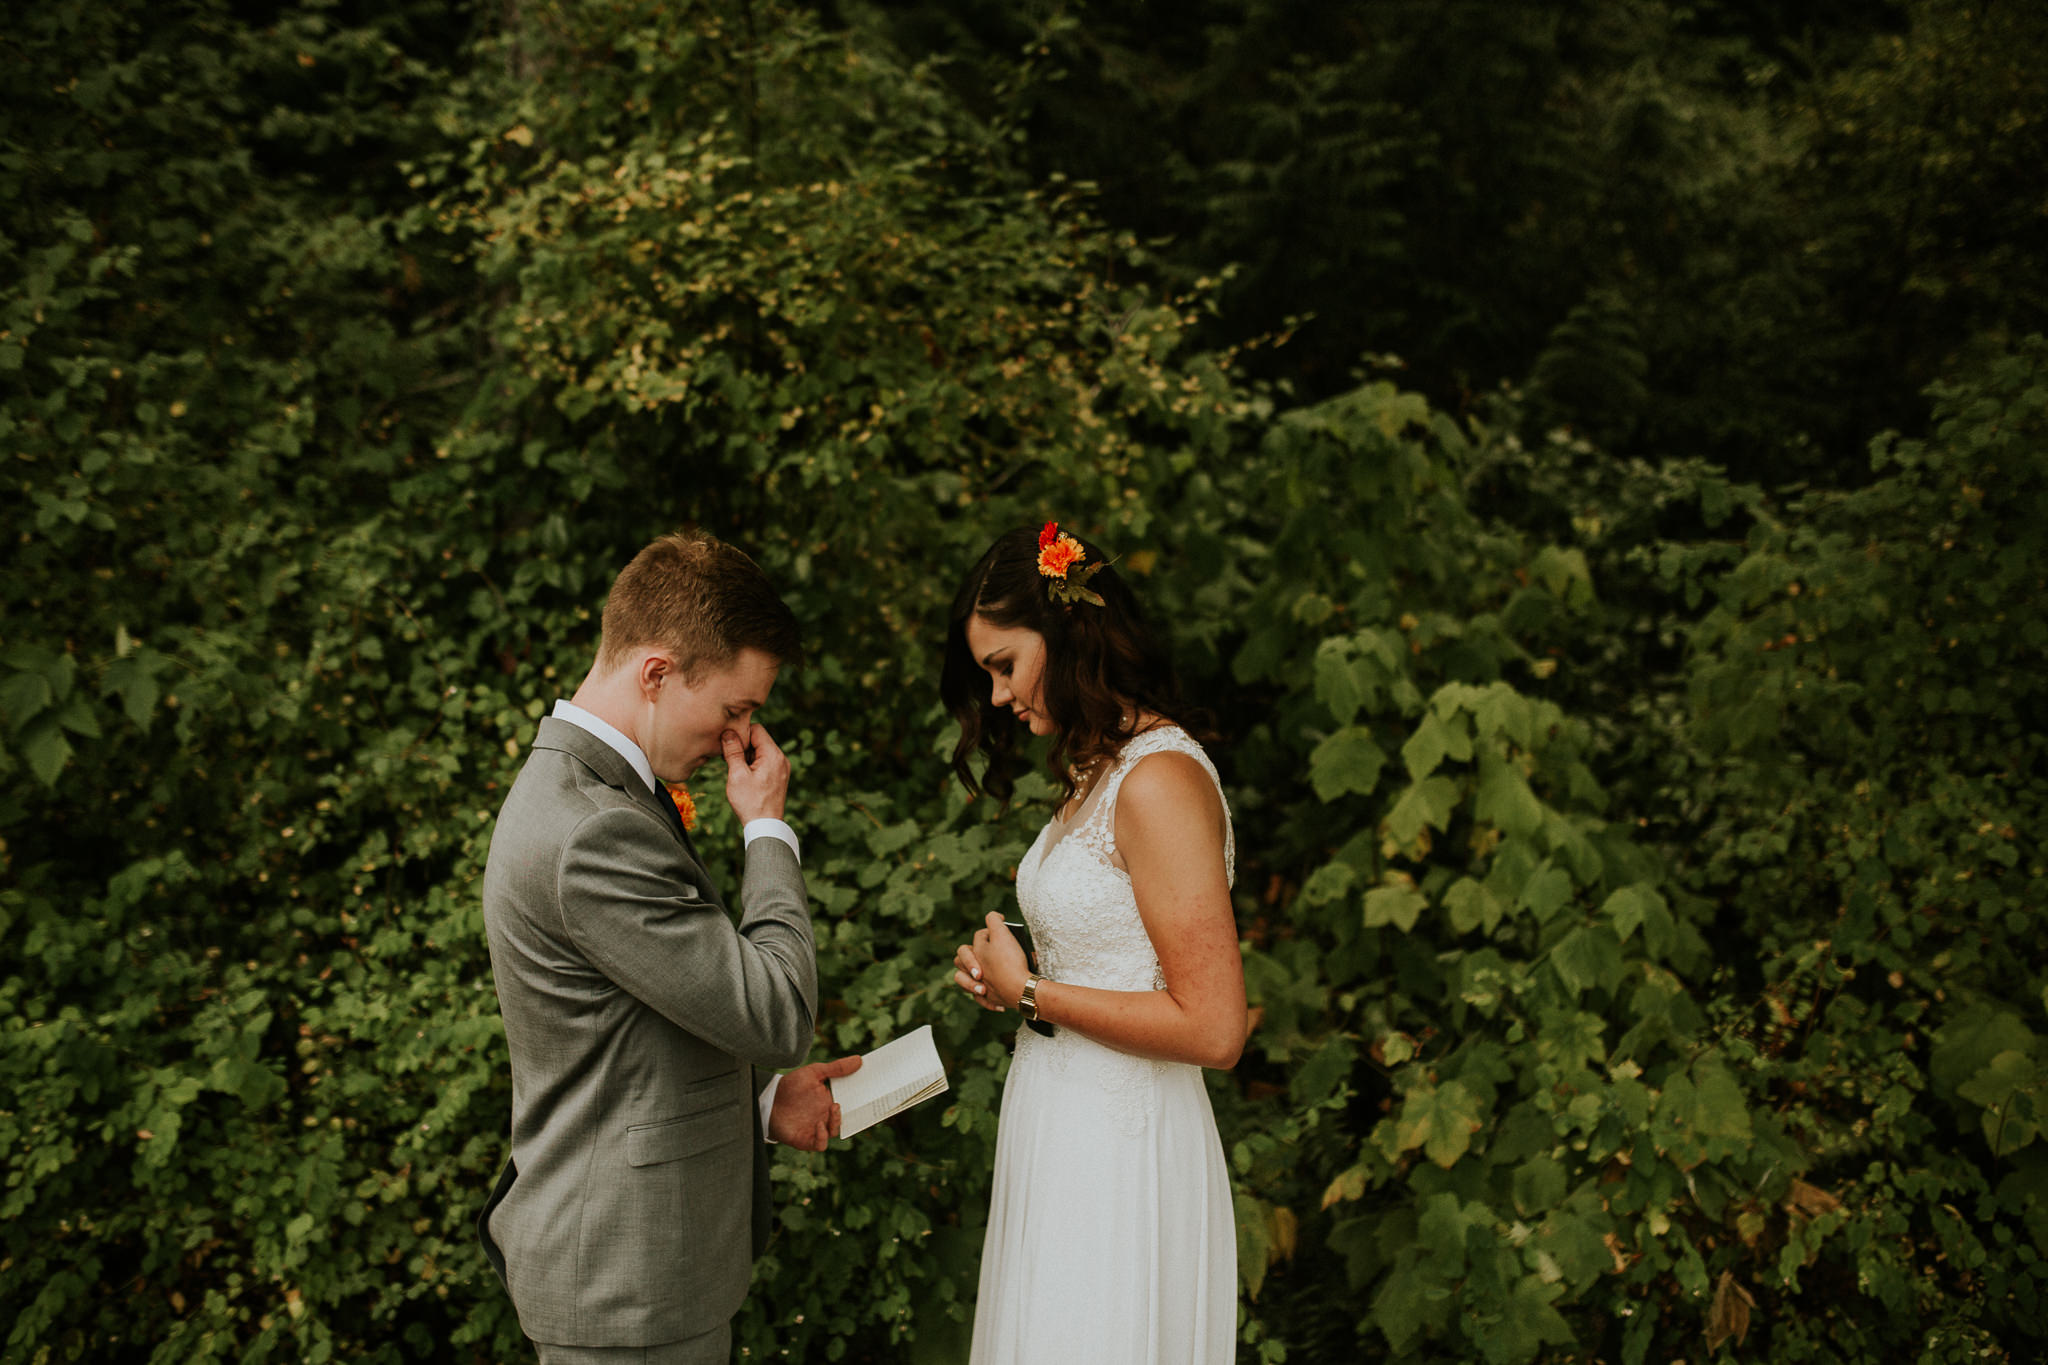 Port-Orchard-Manchester-Park-elopement-Bride-And-Groom-23.jpg